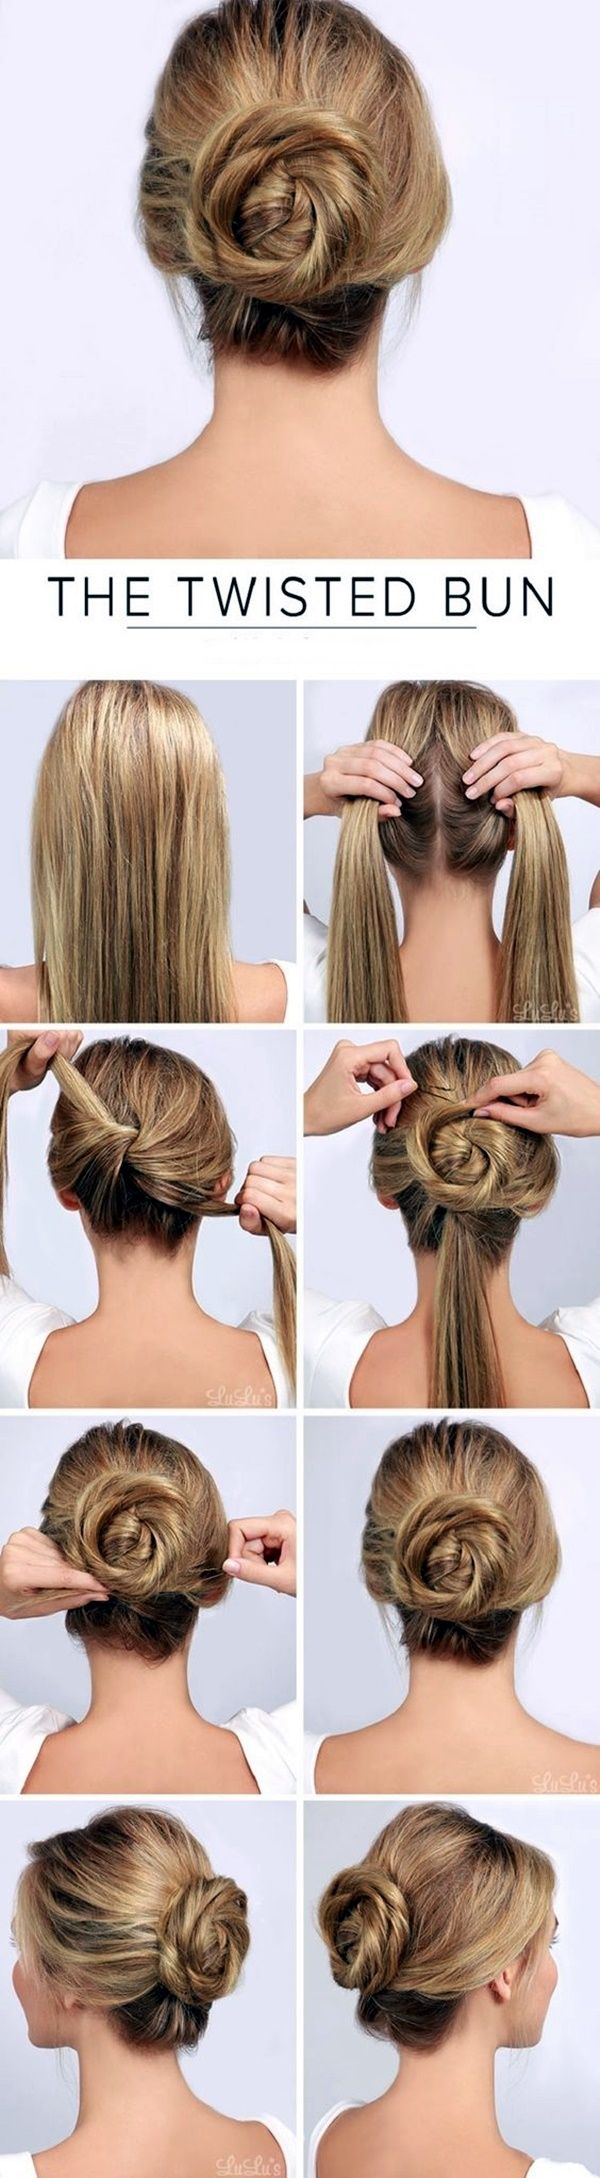 Ha Hair Accessories For Apostolic Long Hair - 100 quick hairstyle tutorials for office women